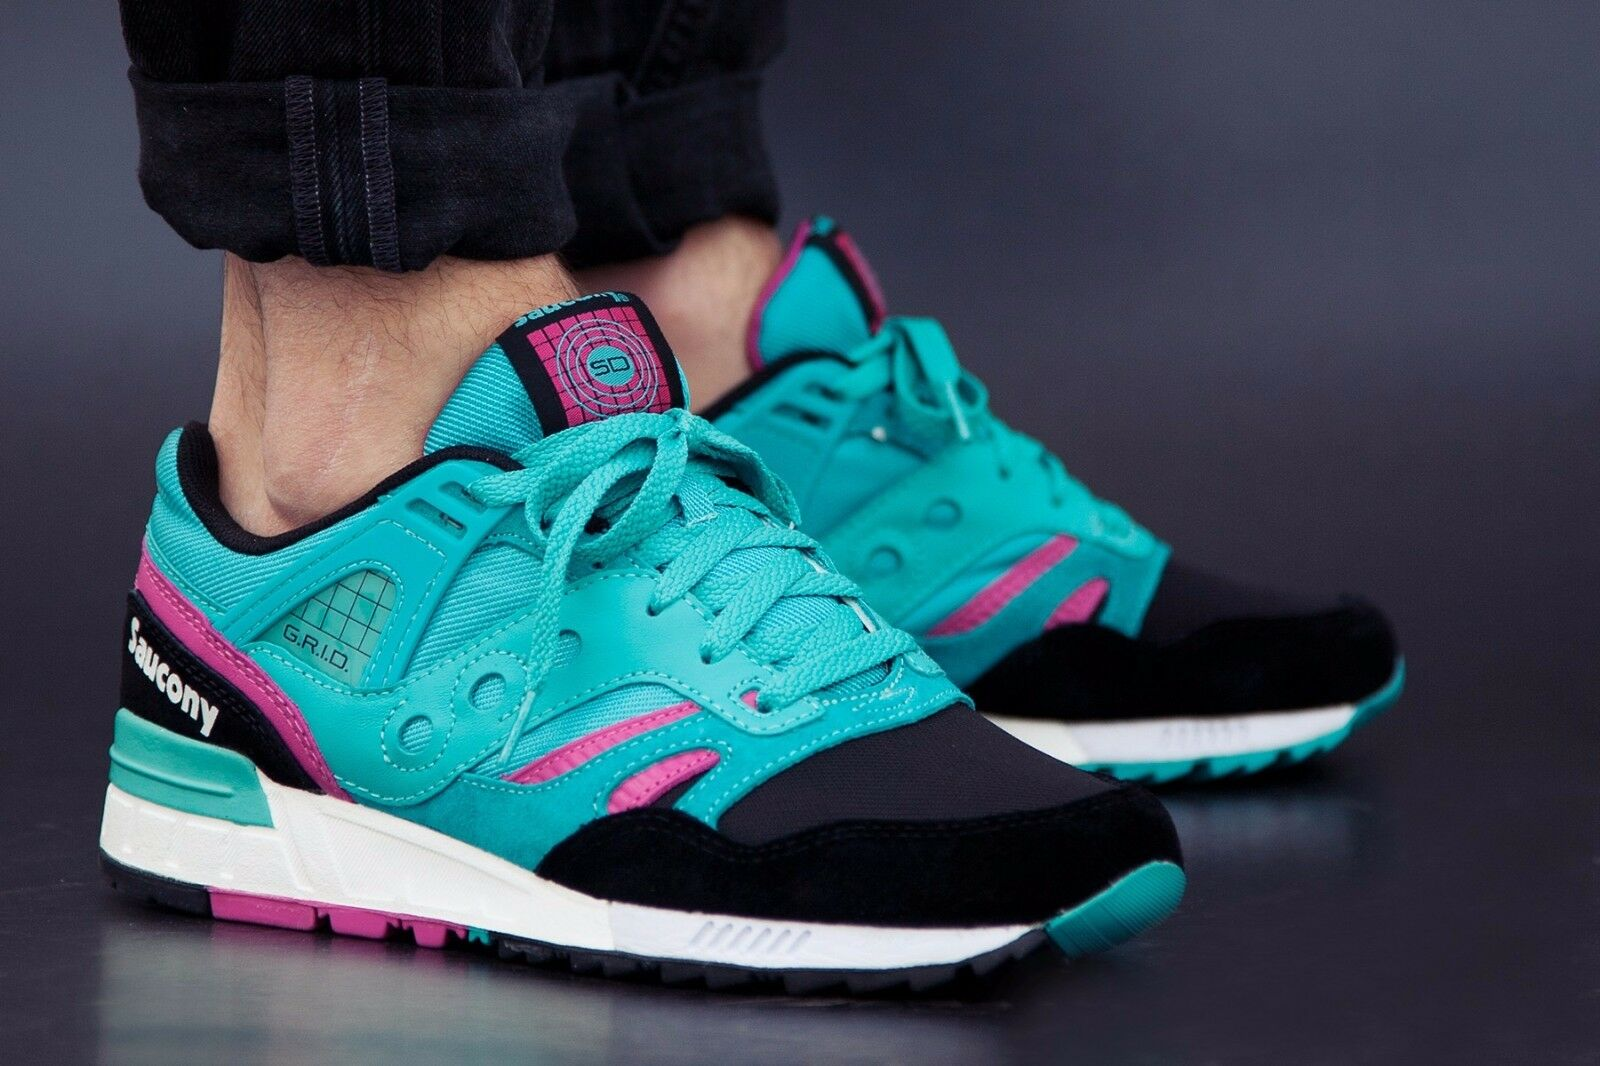 NEW IN BOX Mens Saucony Grid SD Teal Black Casual Running shoes S70164-2 SZ 7-10